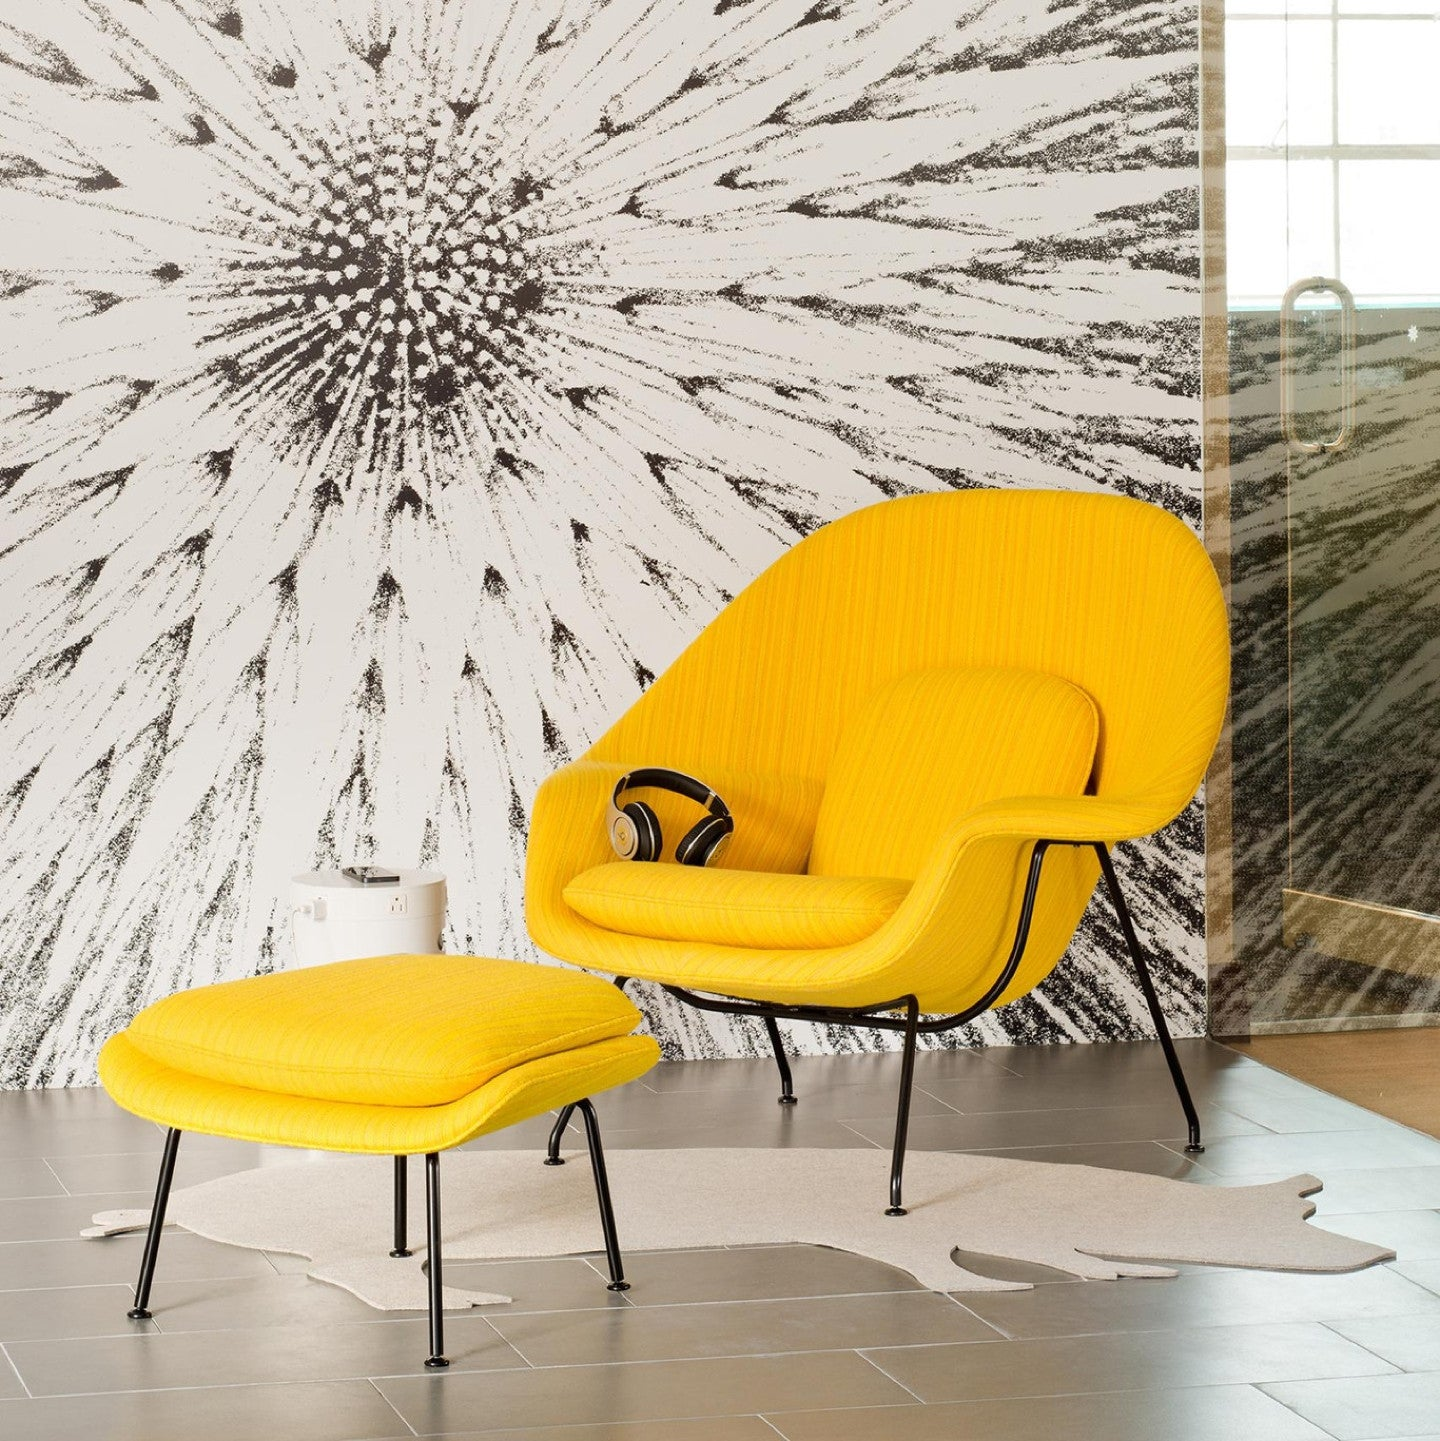 haus® - Womb Chair by Eero Saarinen - haus london Womb Chair by Eero Saarinen